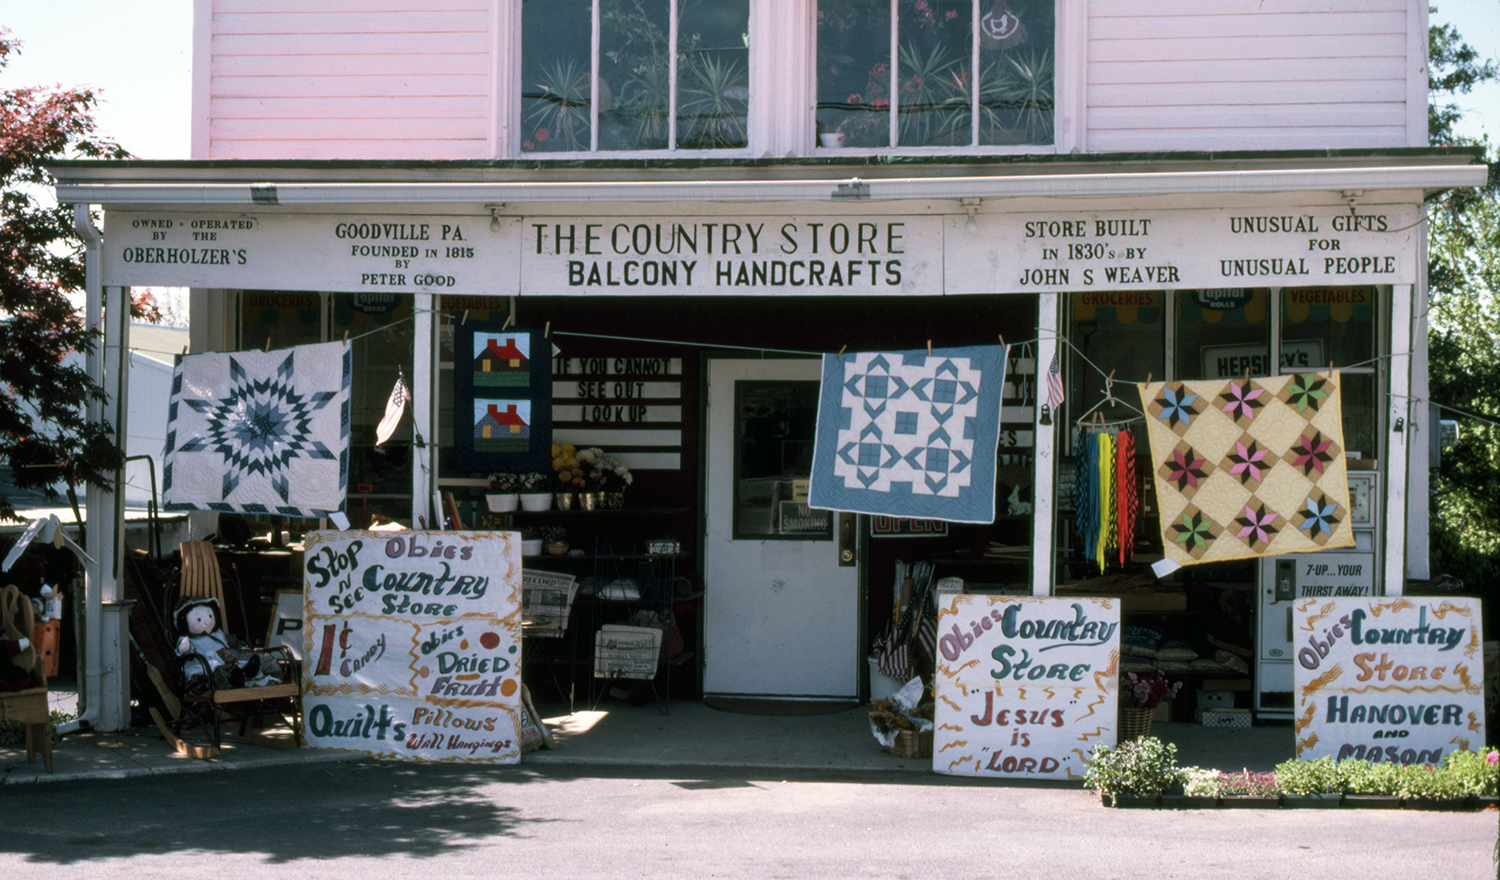 The Goodville Country Store